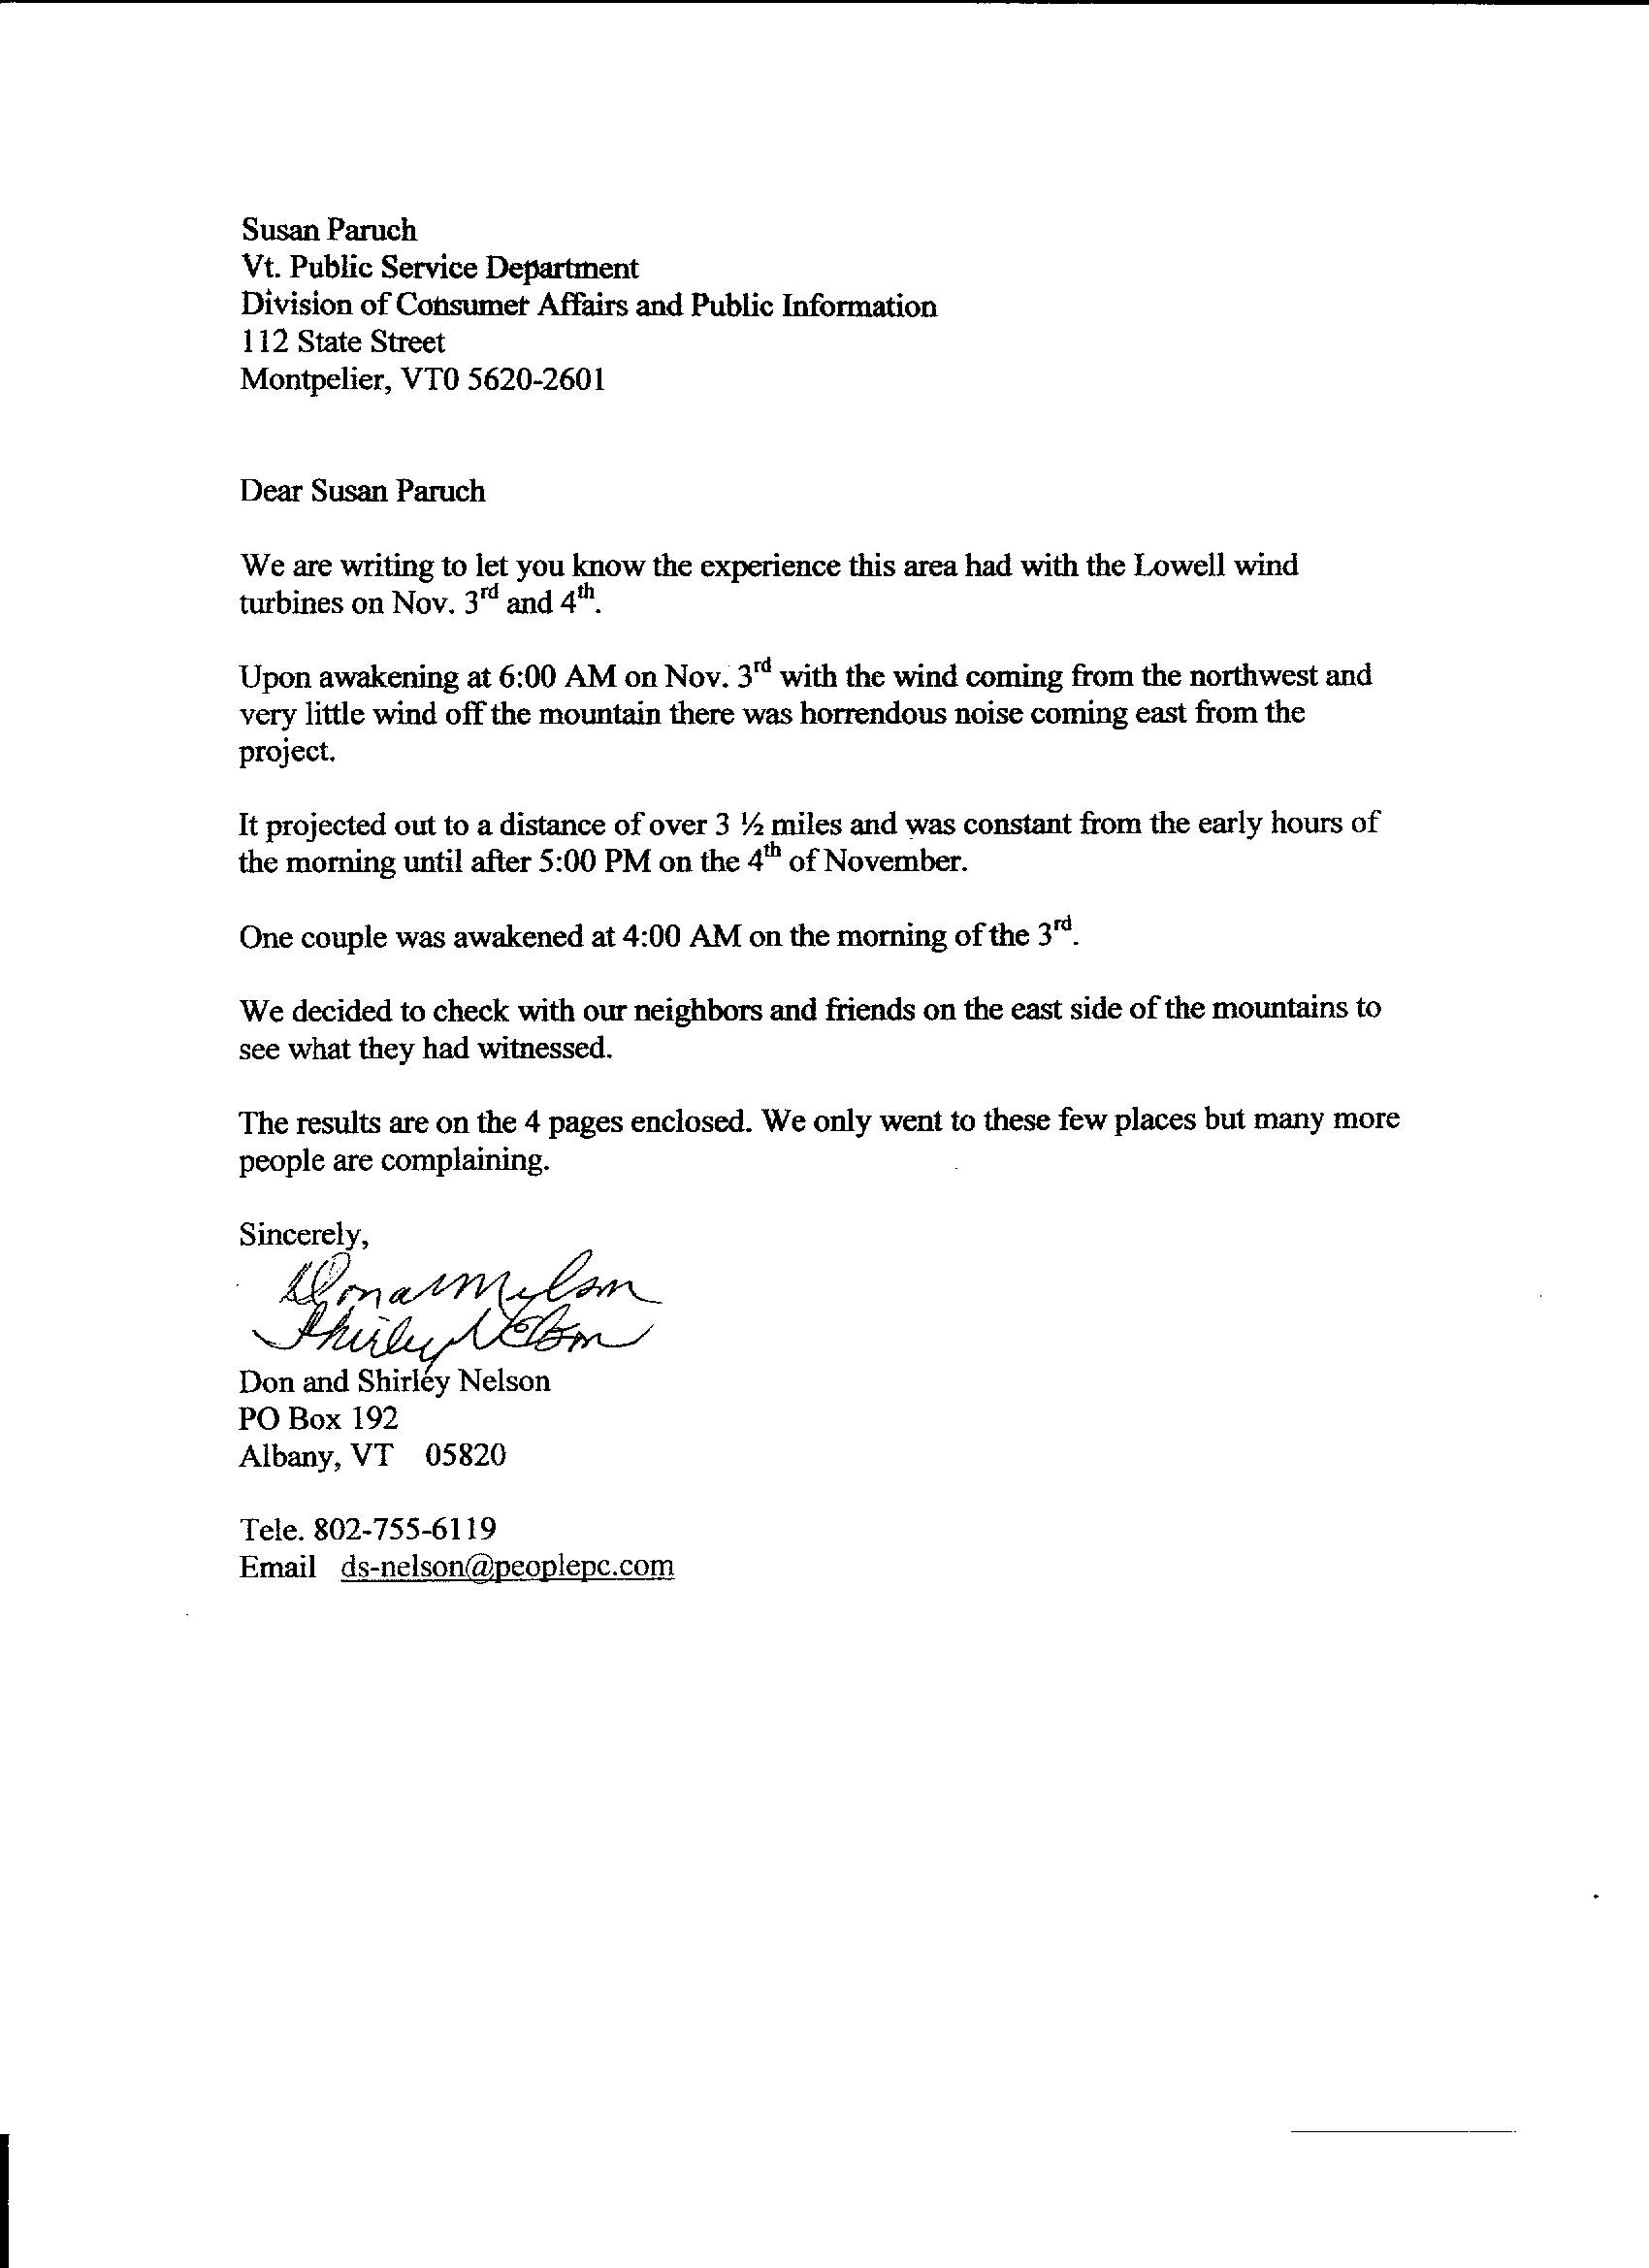 Neighbour Complaint Letter Template - Write Letter Plaint About Services Refrence Letter Plaint